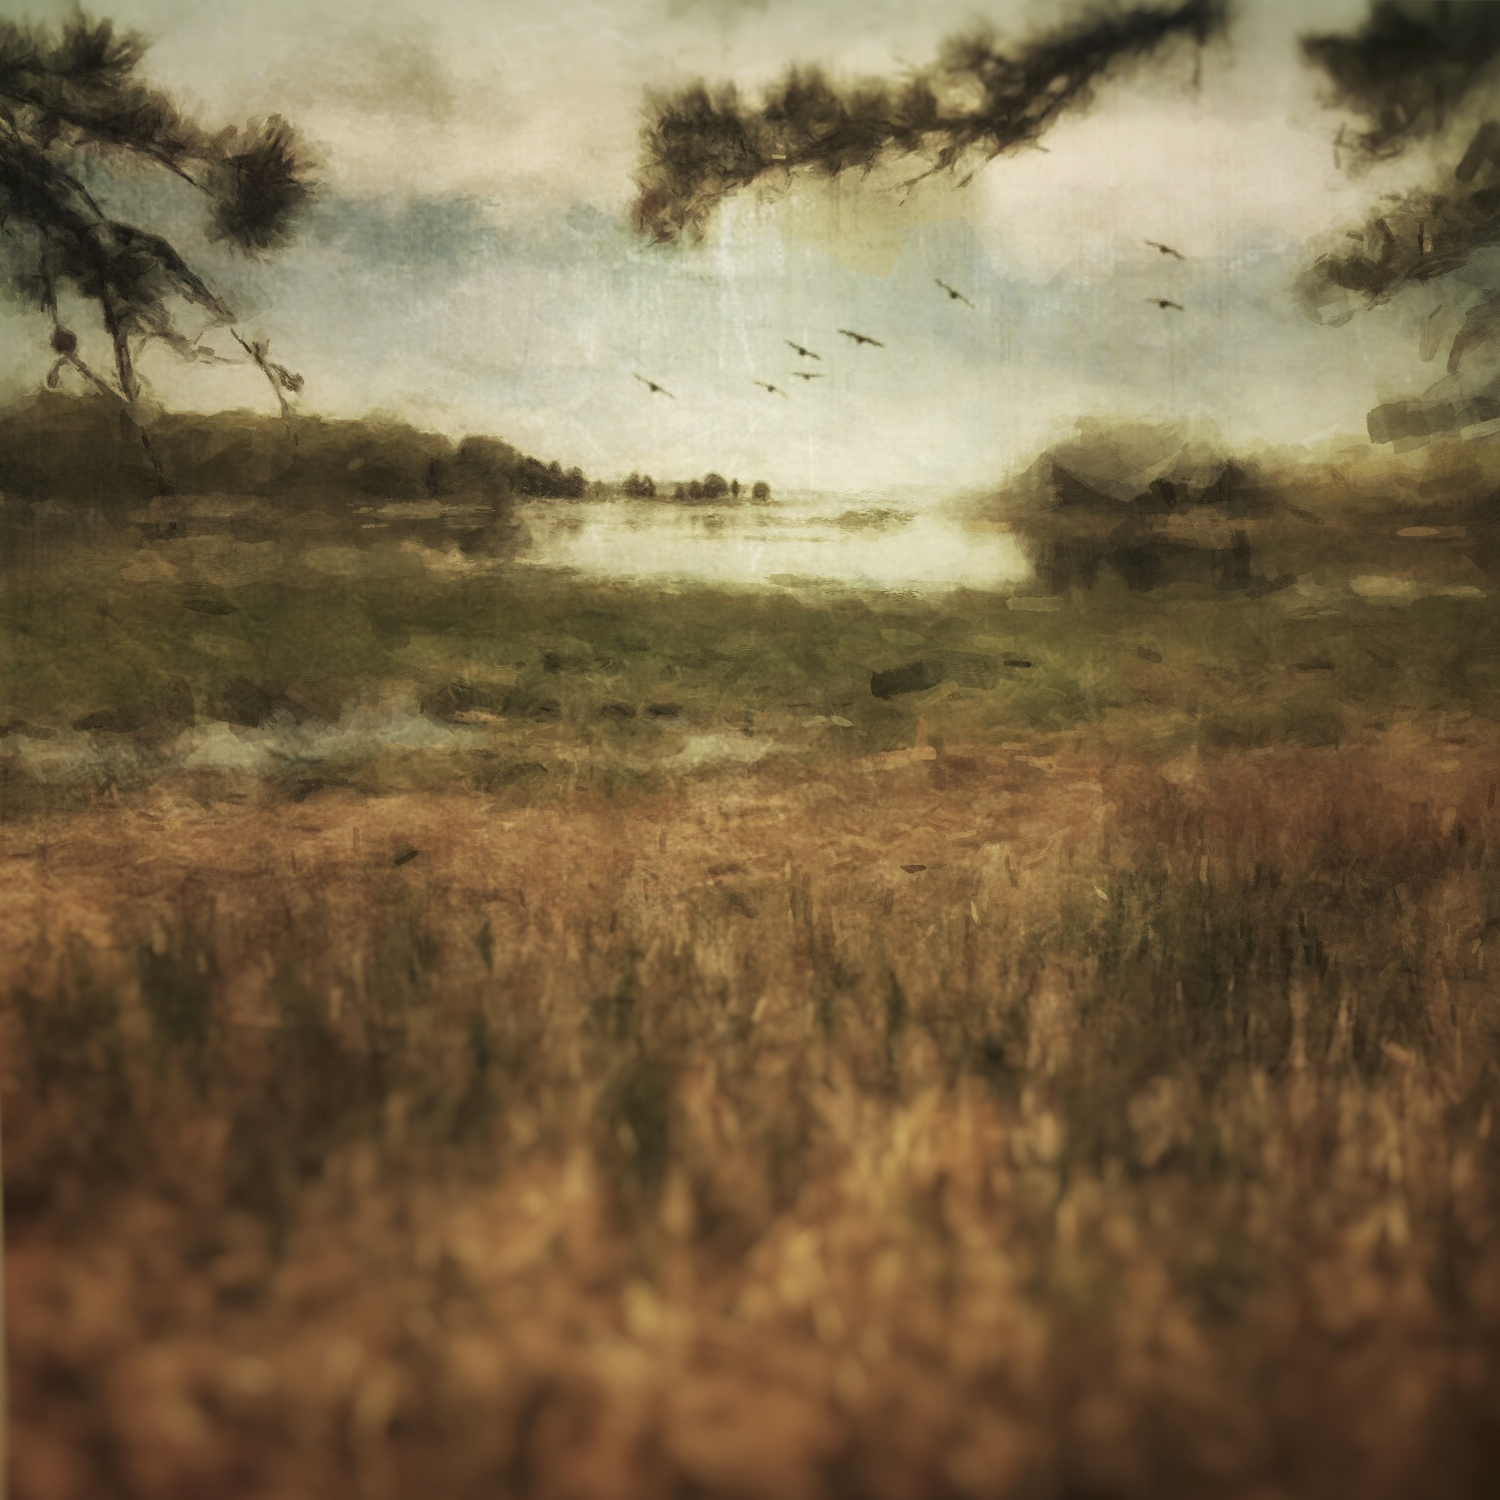 Birds on the Tides by Rebecca Bruyn